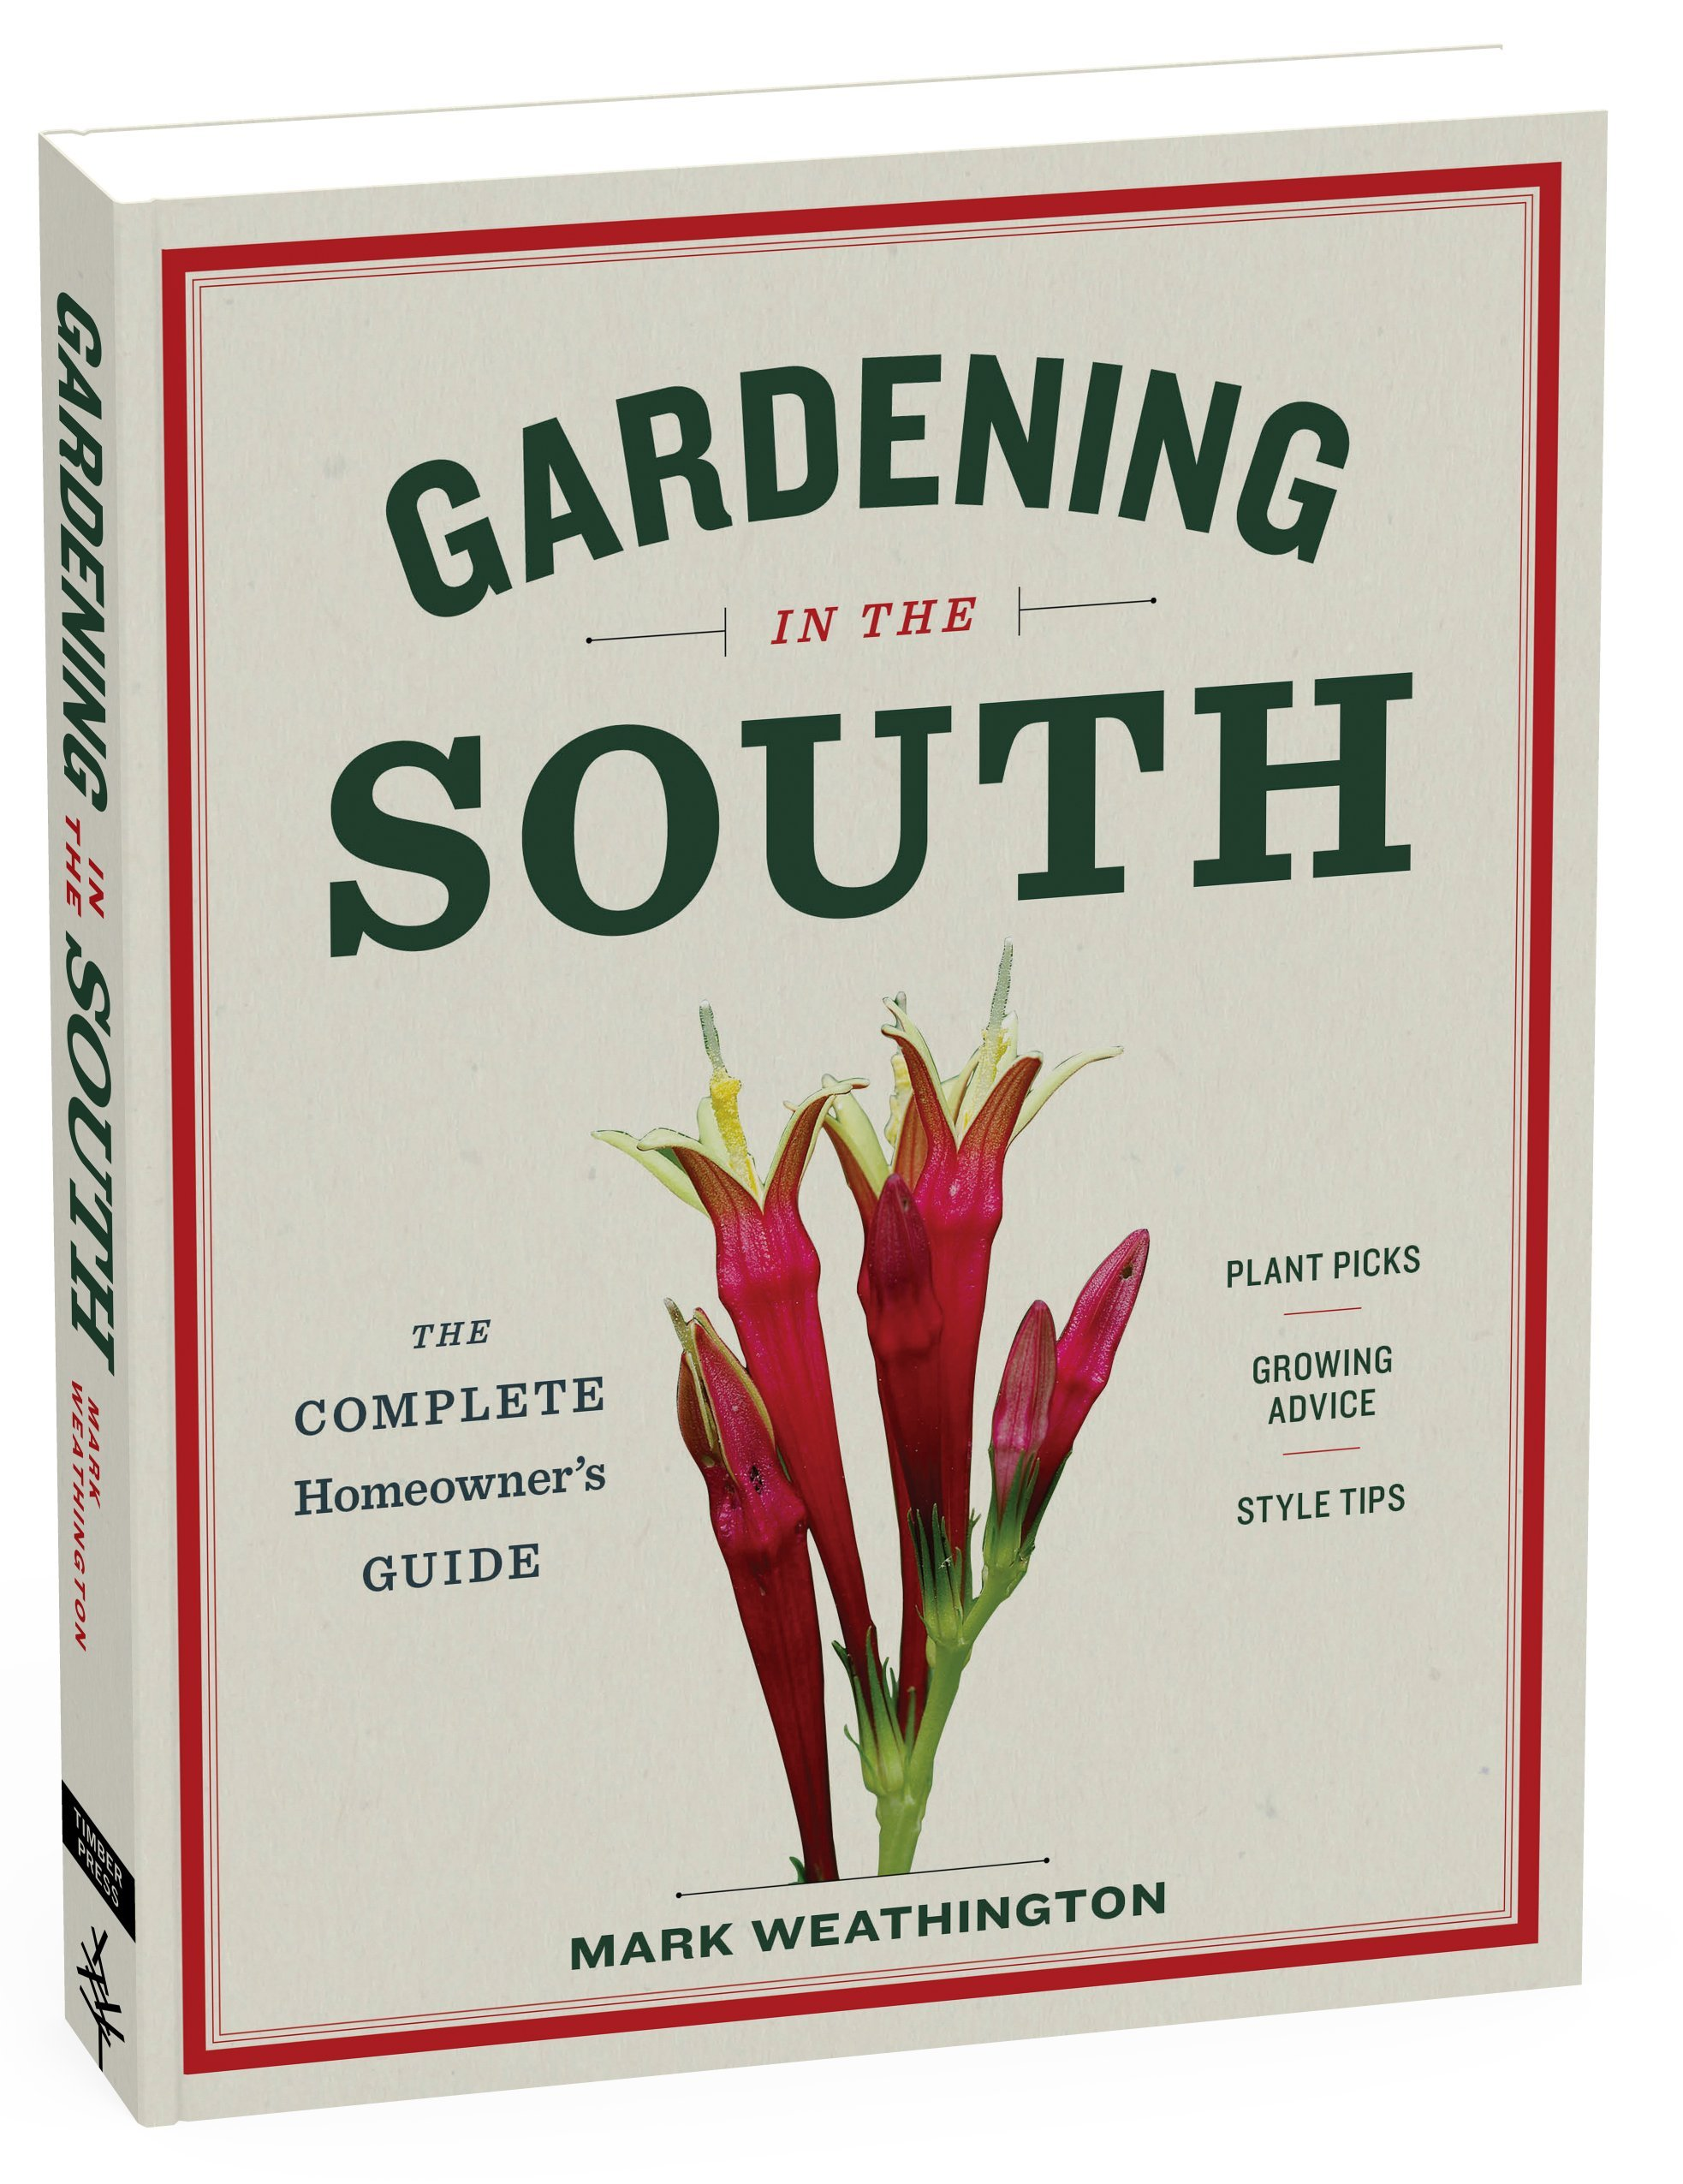 Superb Gardening In The South: The Complete Homeowneru0027s Guide: Mark Weathington:  9781604695915: Amazon.com: Books